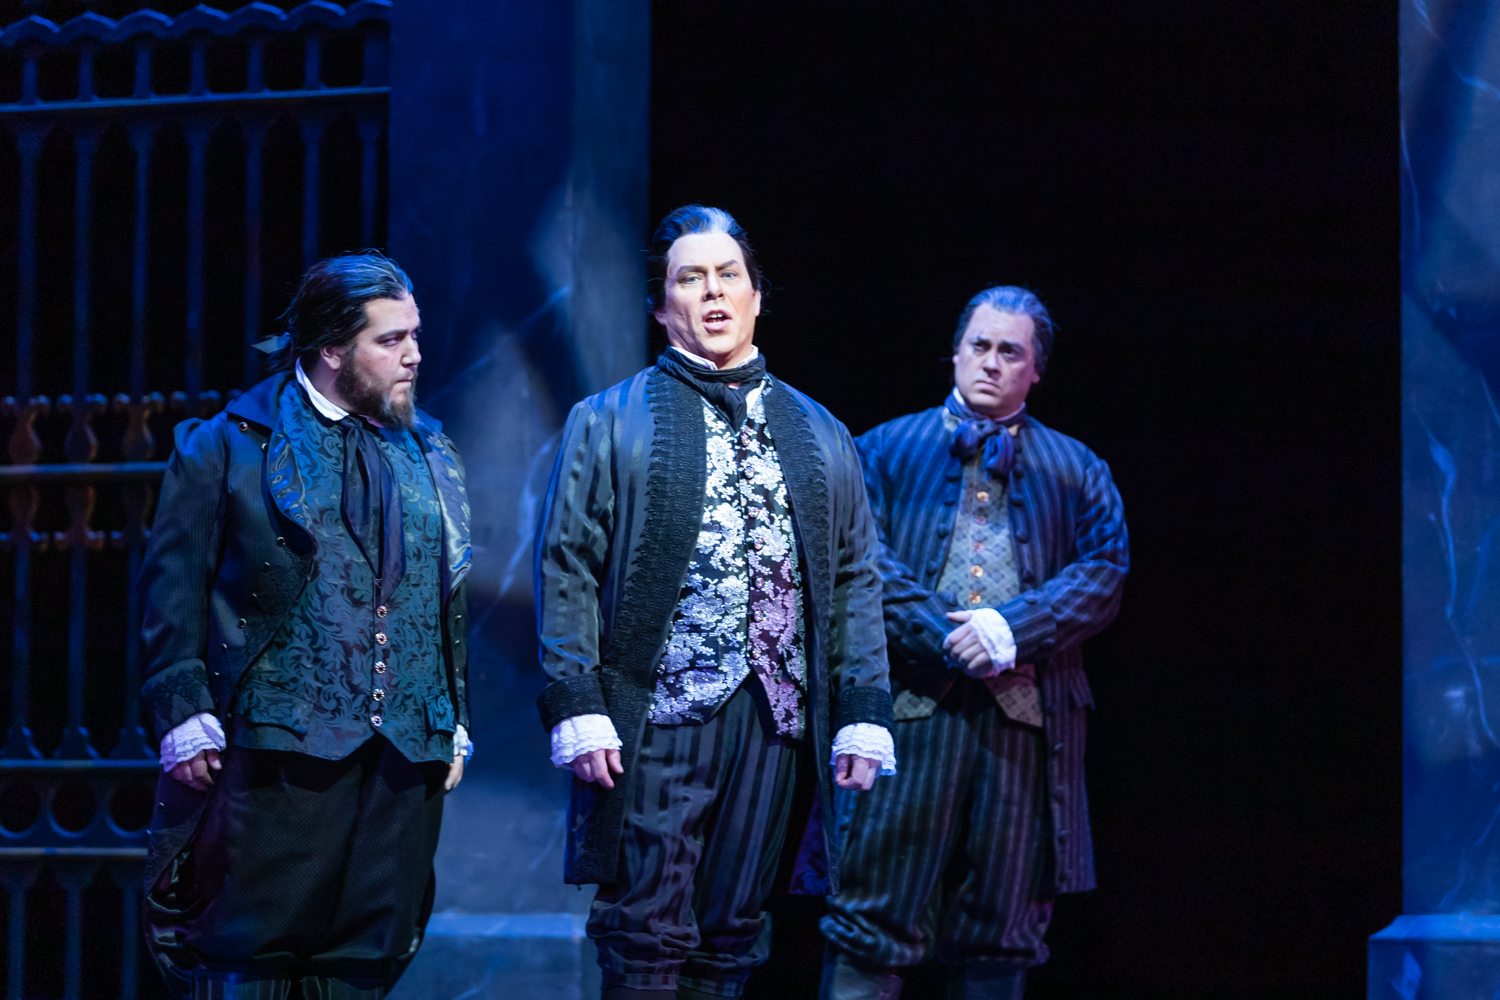 IN REVIEW: (from left to right) tenor JACOB KATO as Spoletta, baritone MALCOLM MACKENZIE as Scarpia, and baritone TED FEDERLE as Sciarrone in North Carolina Opera's April 2019 production of Giacomo Puccini's TOSCA [Photograph by Eric Waters, © by North Carolina Opera]